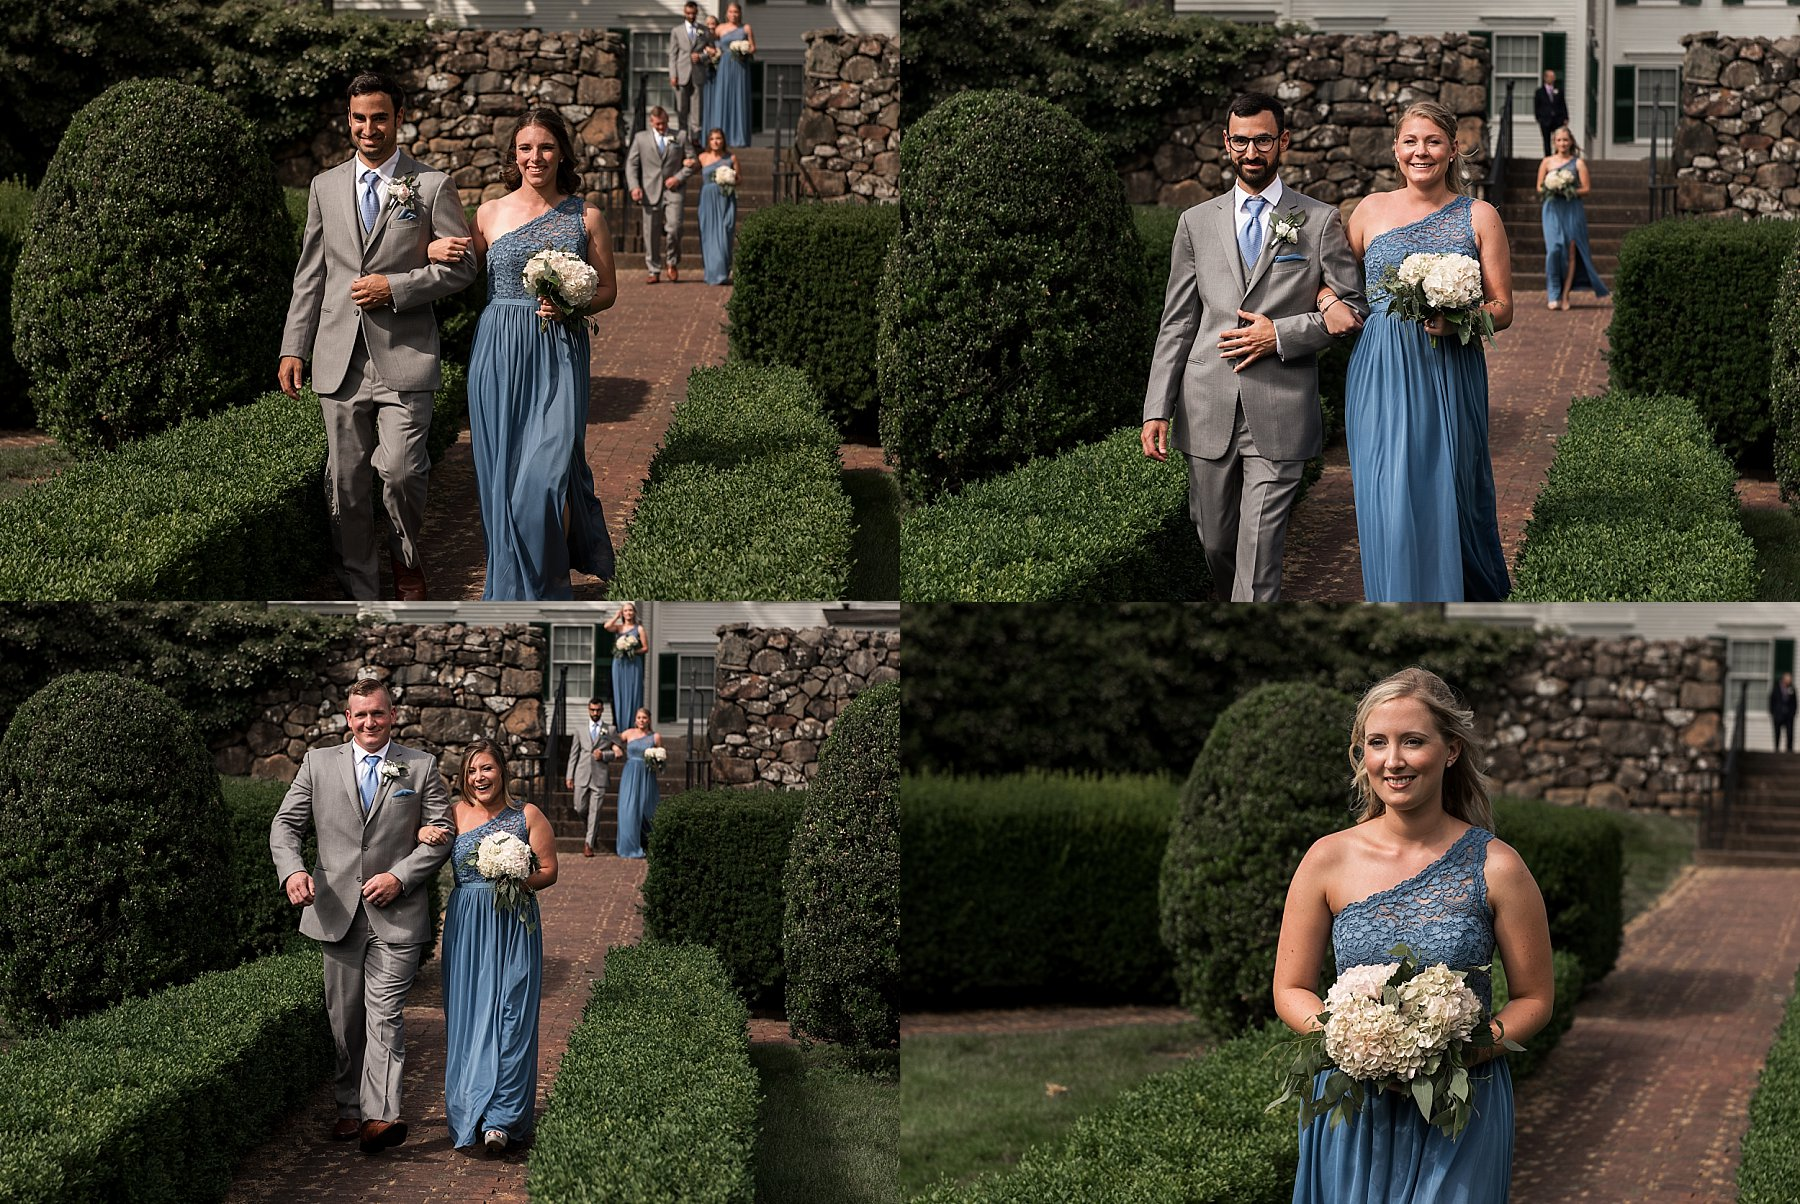 Ceremony in the garden at the Hillstead Museum